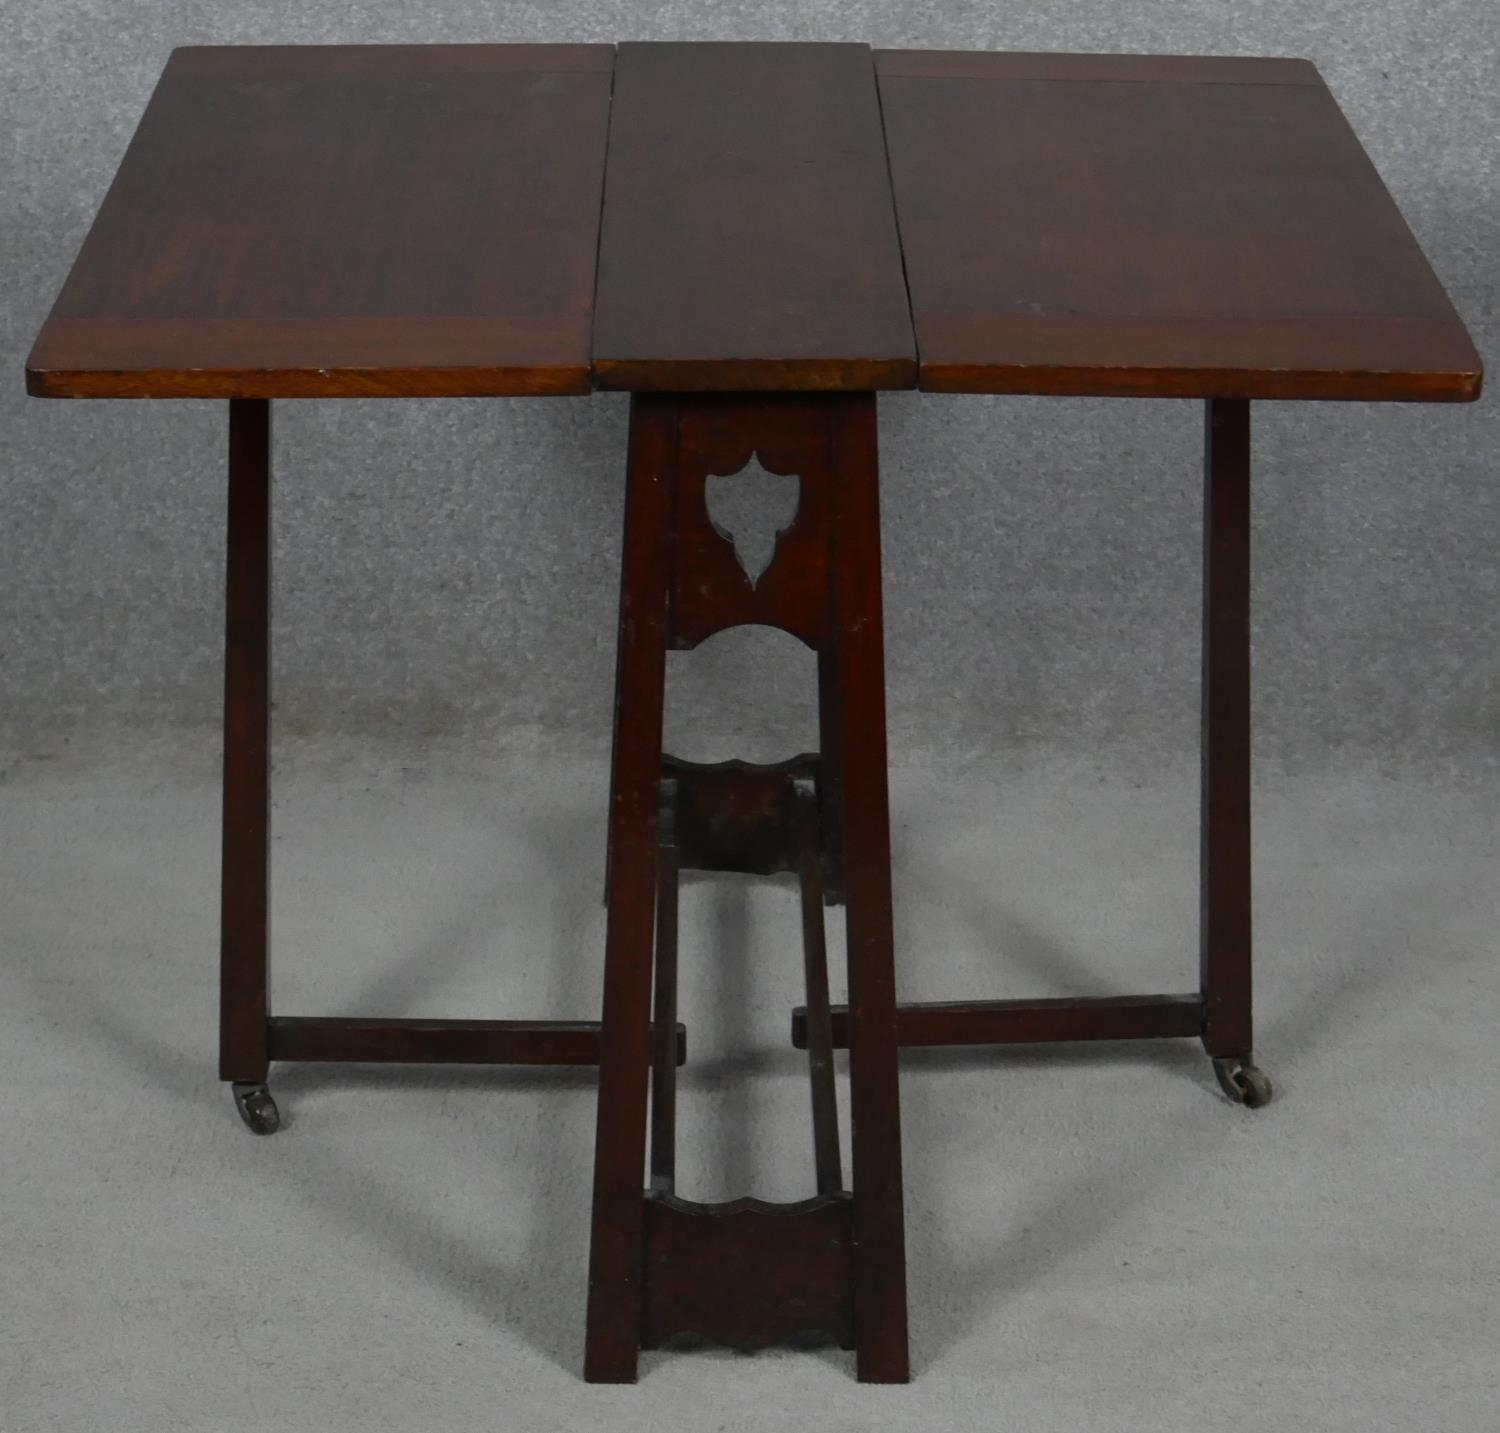 A late 19th century Art and Crafts walnut drop flap Sutherland table. H.57 L.69 W.64cm - Image 2 of 4